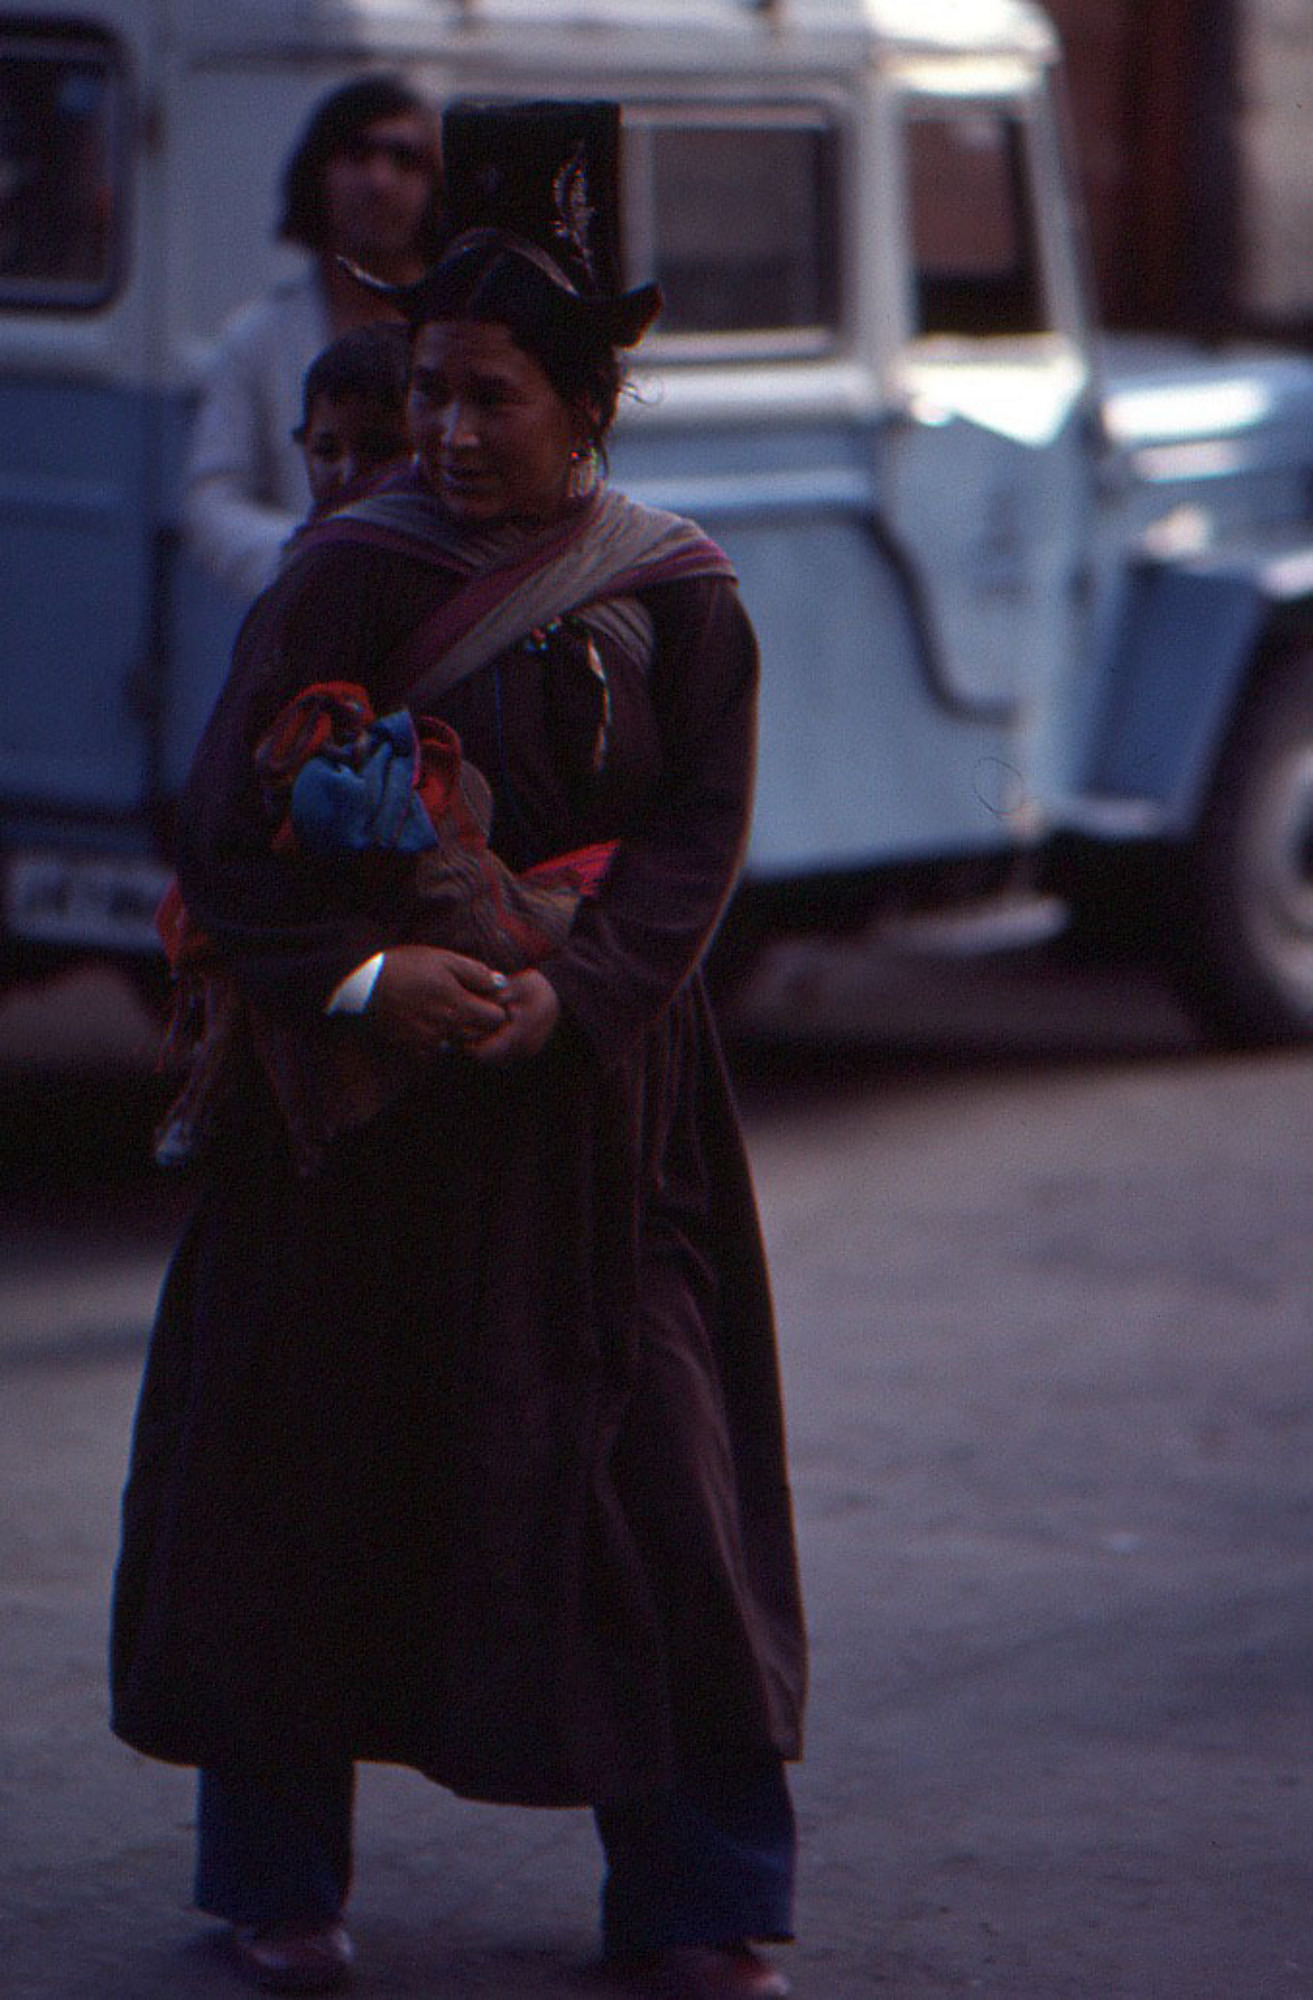 Film Studies of Traditional Tibetan Life and Culture: Ladakh, India, 1978 86.13.3-37OP 7/26/1978 (3:40p.m.)